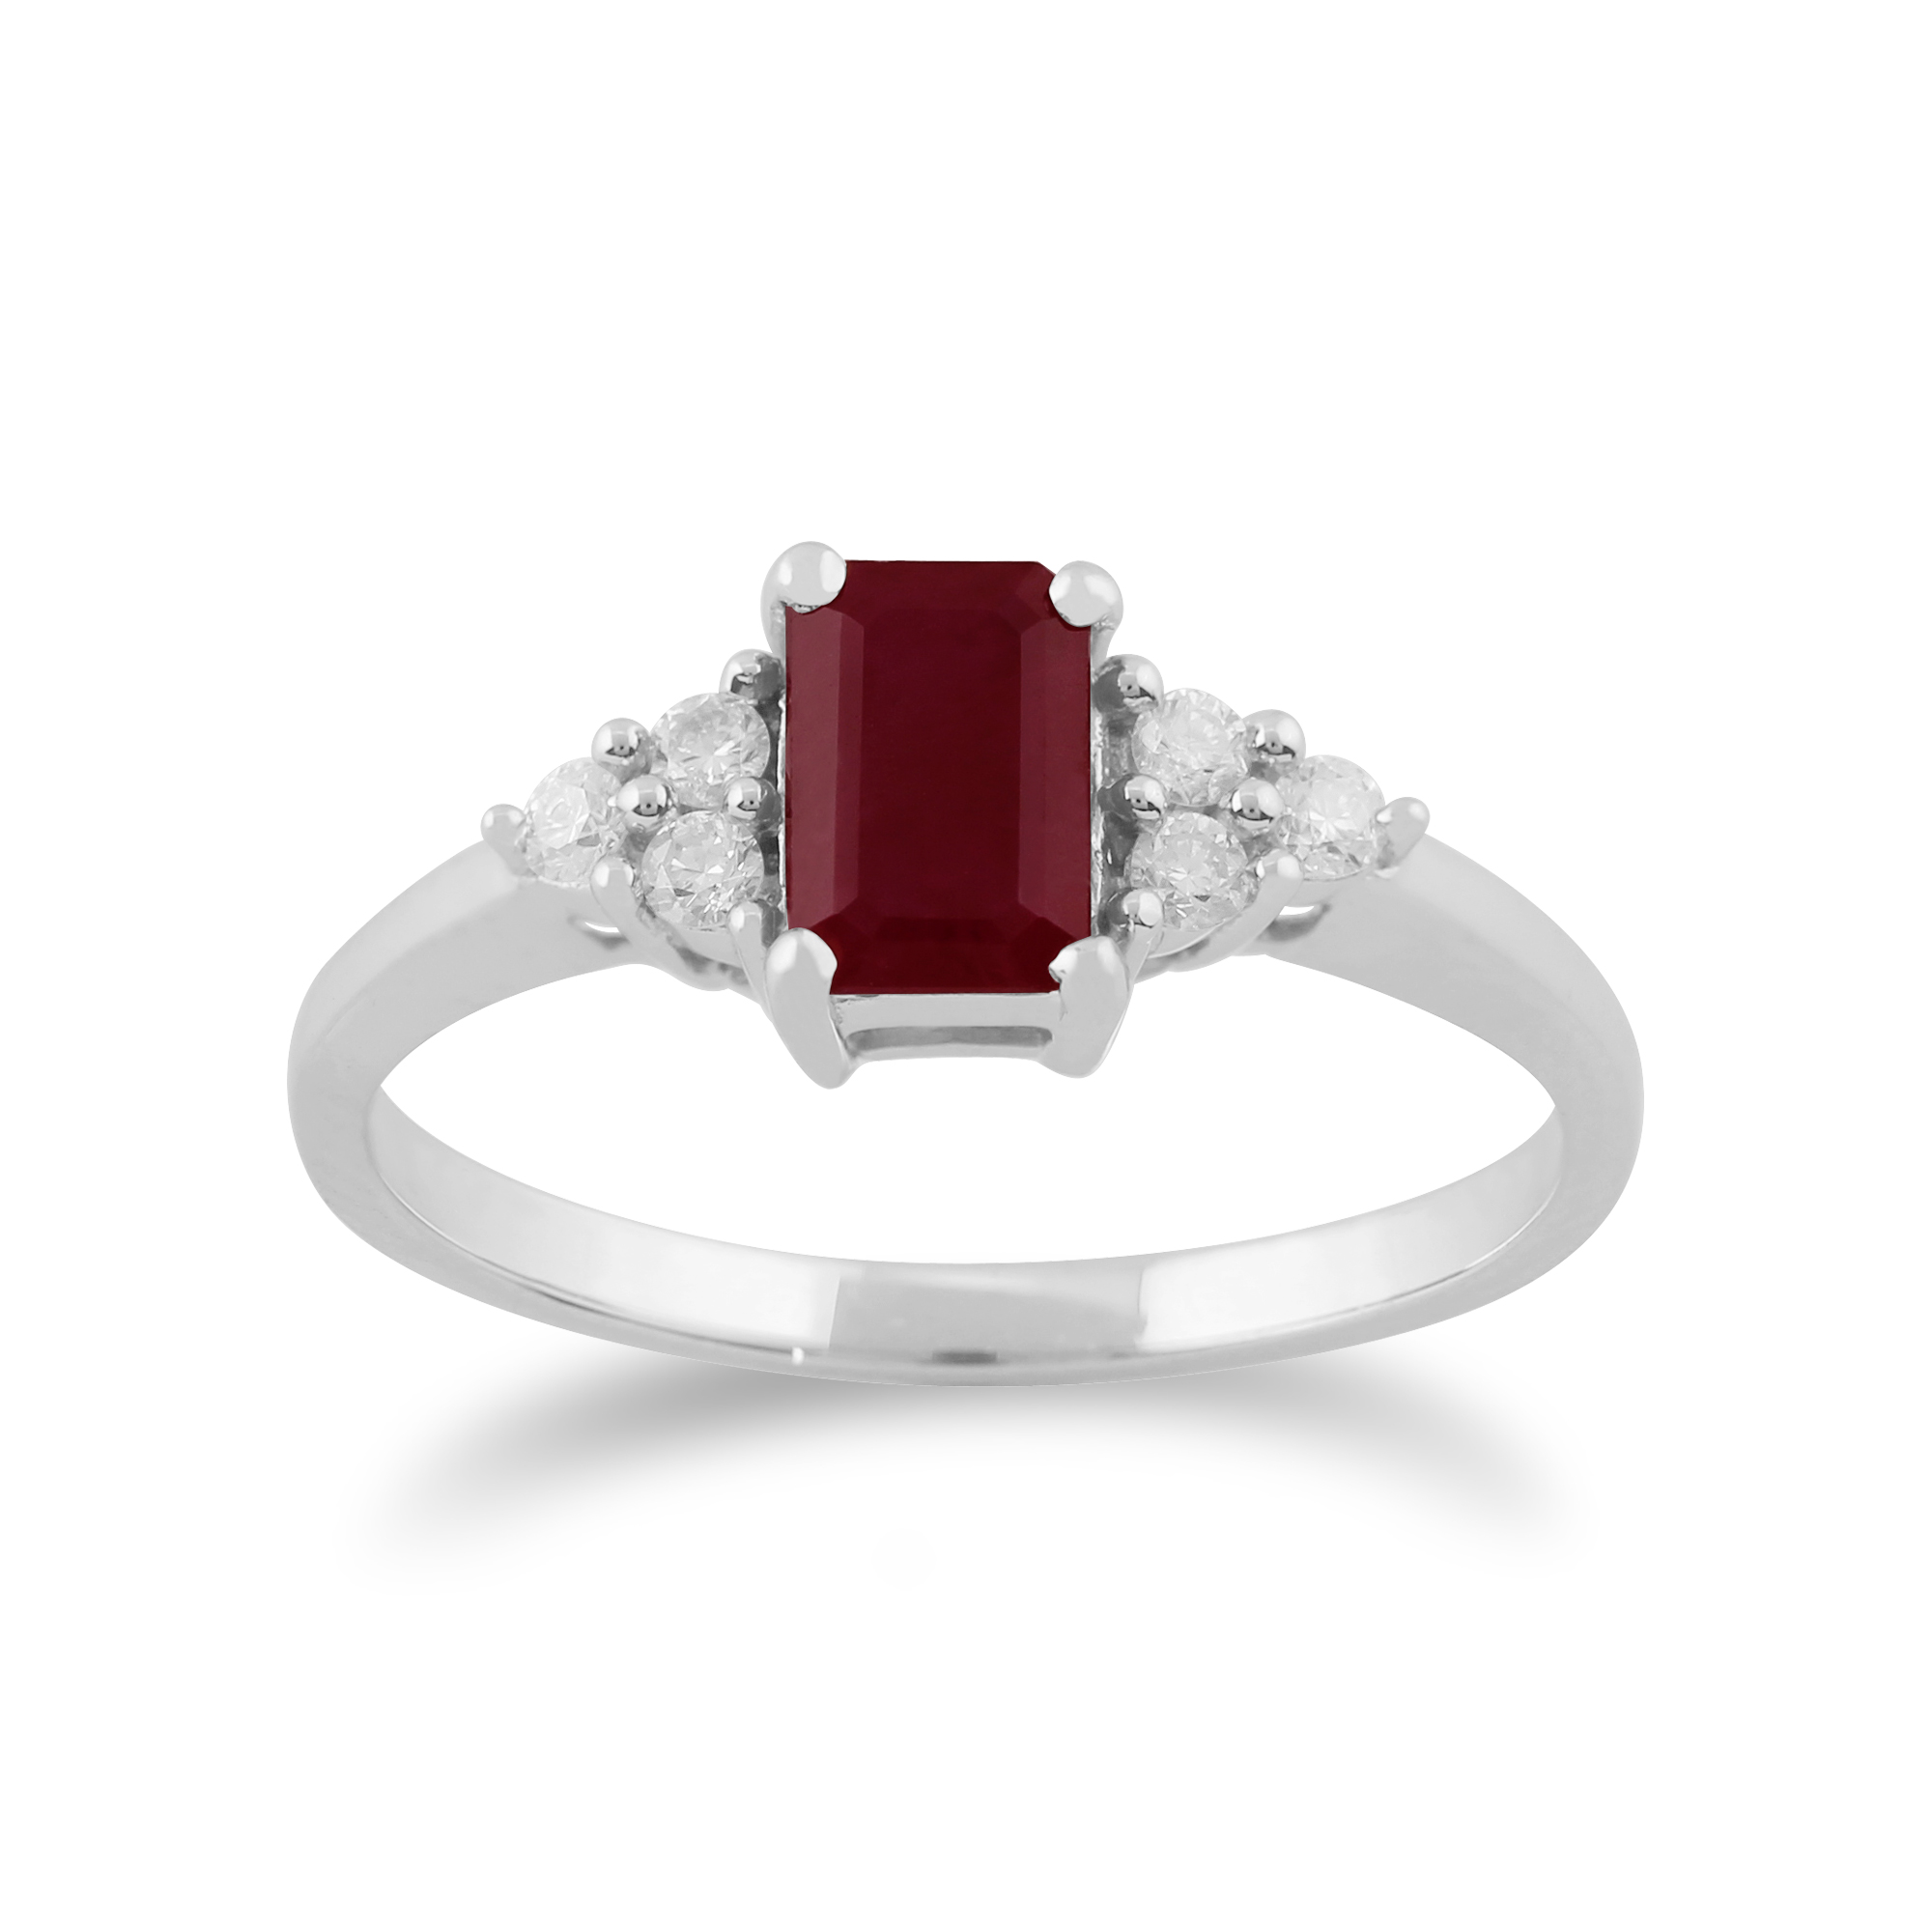 9ct White Gold 0.66ct Natural Ruby & Diamond Single Stone Ring Size: M